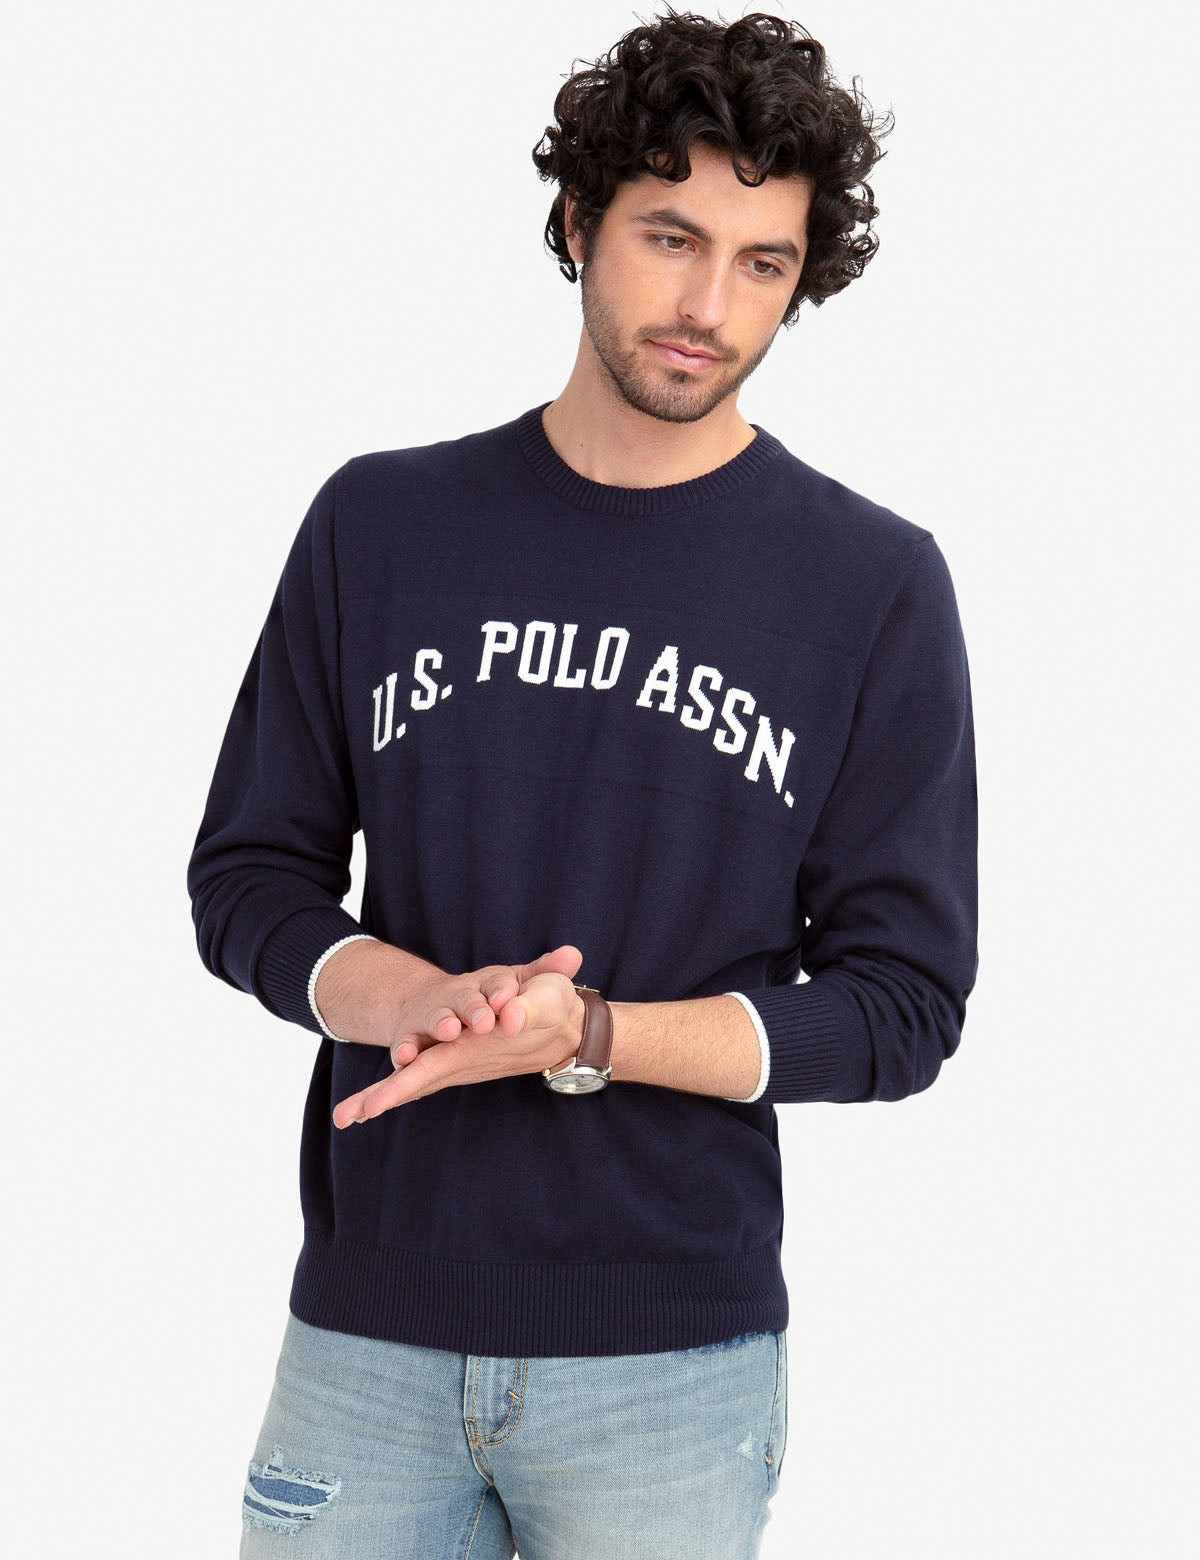 JERSEY CREW NECK SWEATER